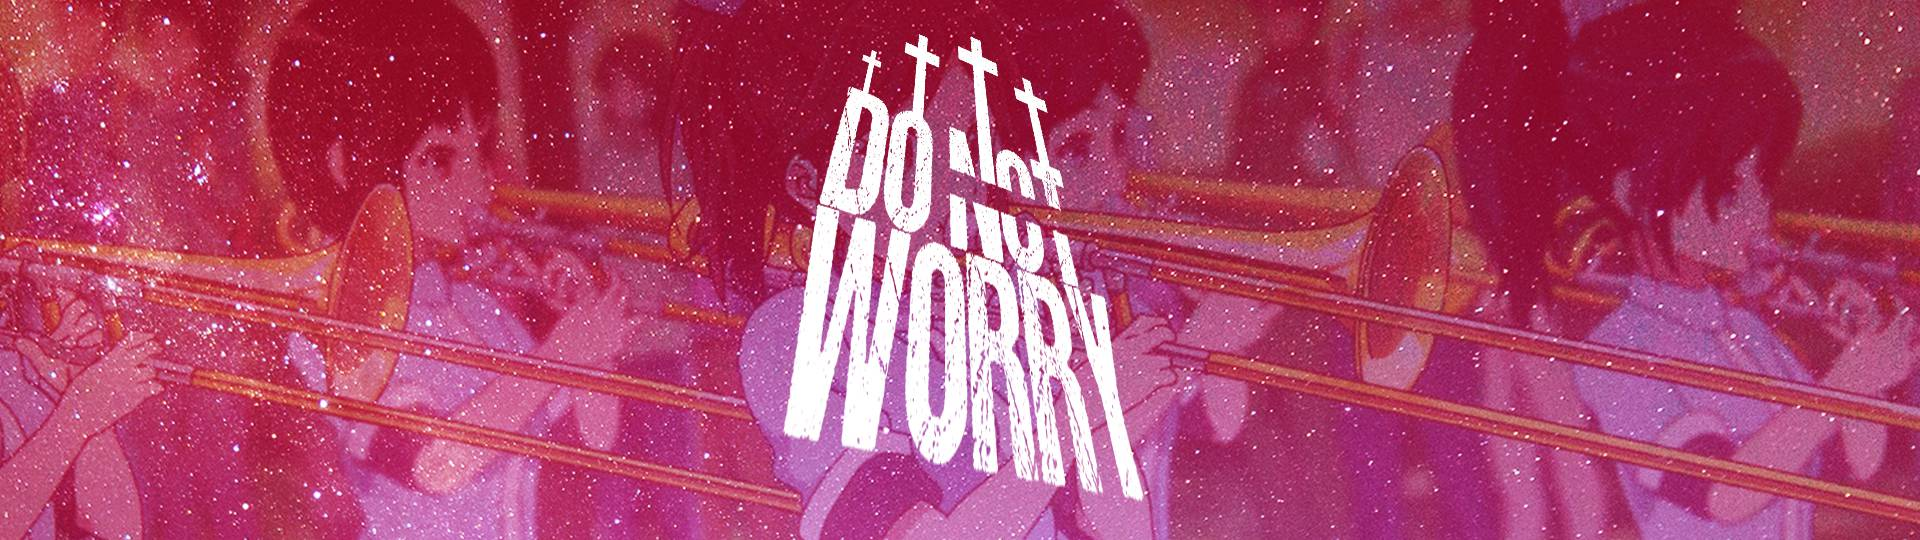 donotworry_1920x540